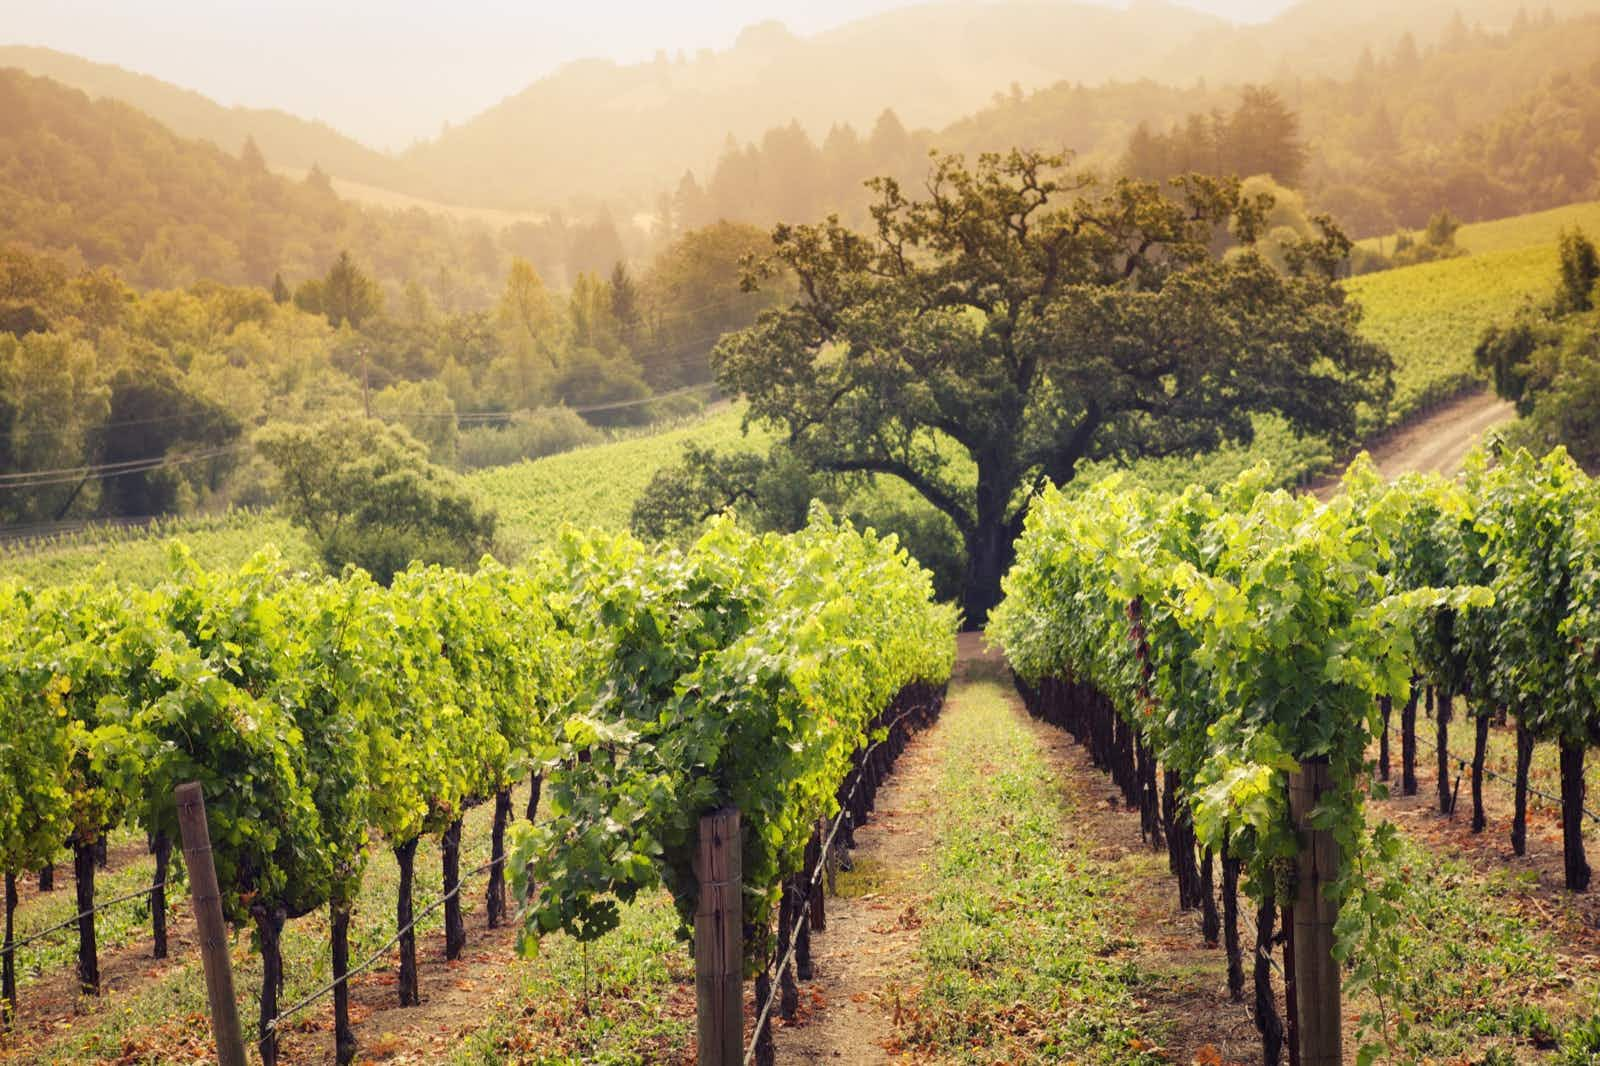 Just a short trip from San Francisco, Napa Valley's delights can be sampled within a weekend © YinYang / Getty Images